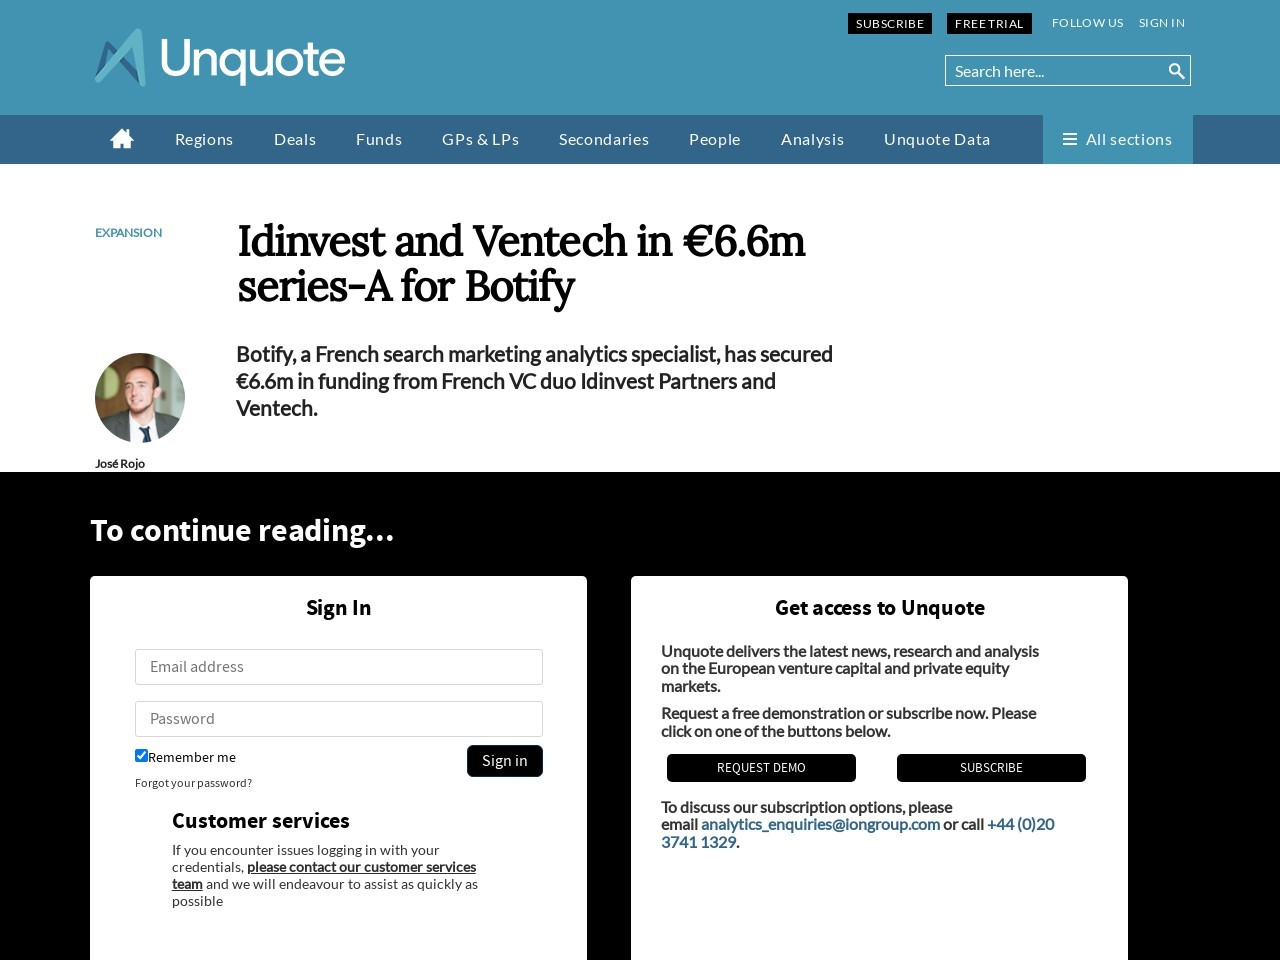 Idinvest and Ventech in €6.6m series-A for Botify